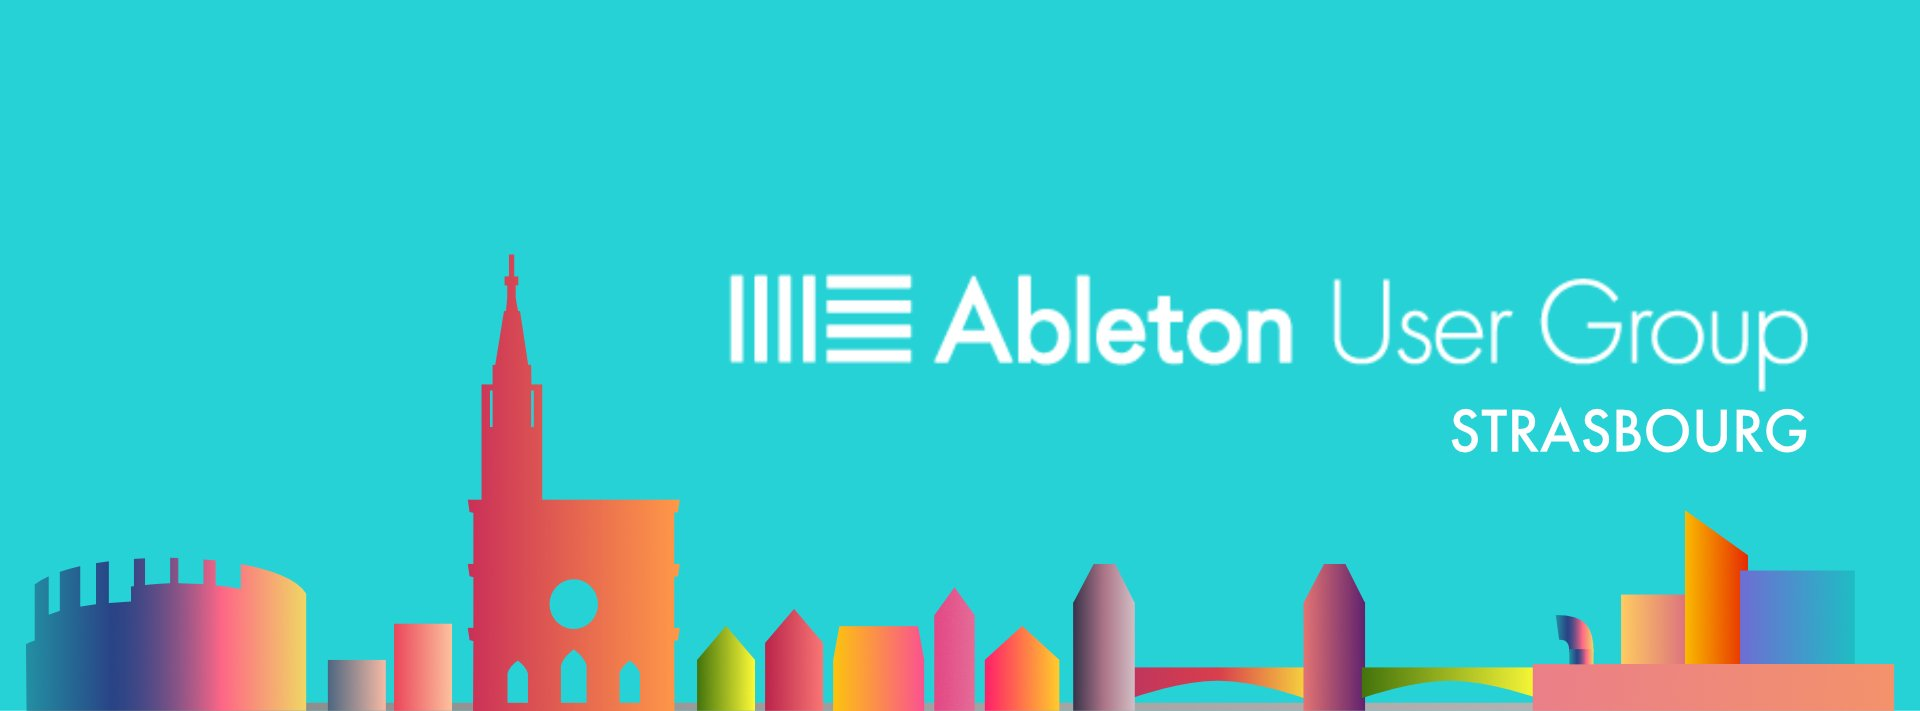 Ableton User Group Strasbourg logo.jpg